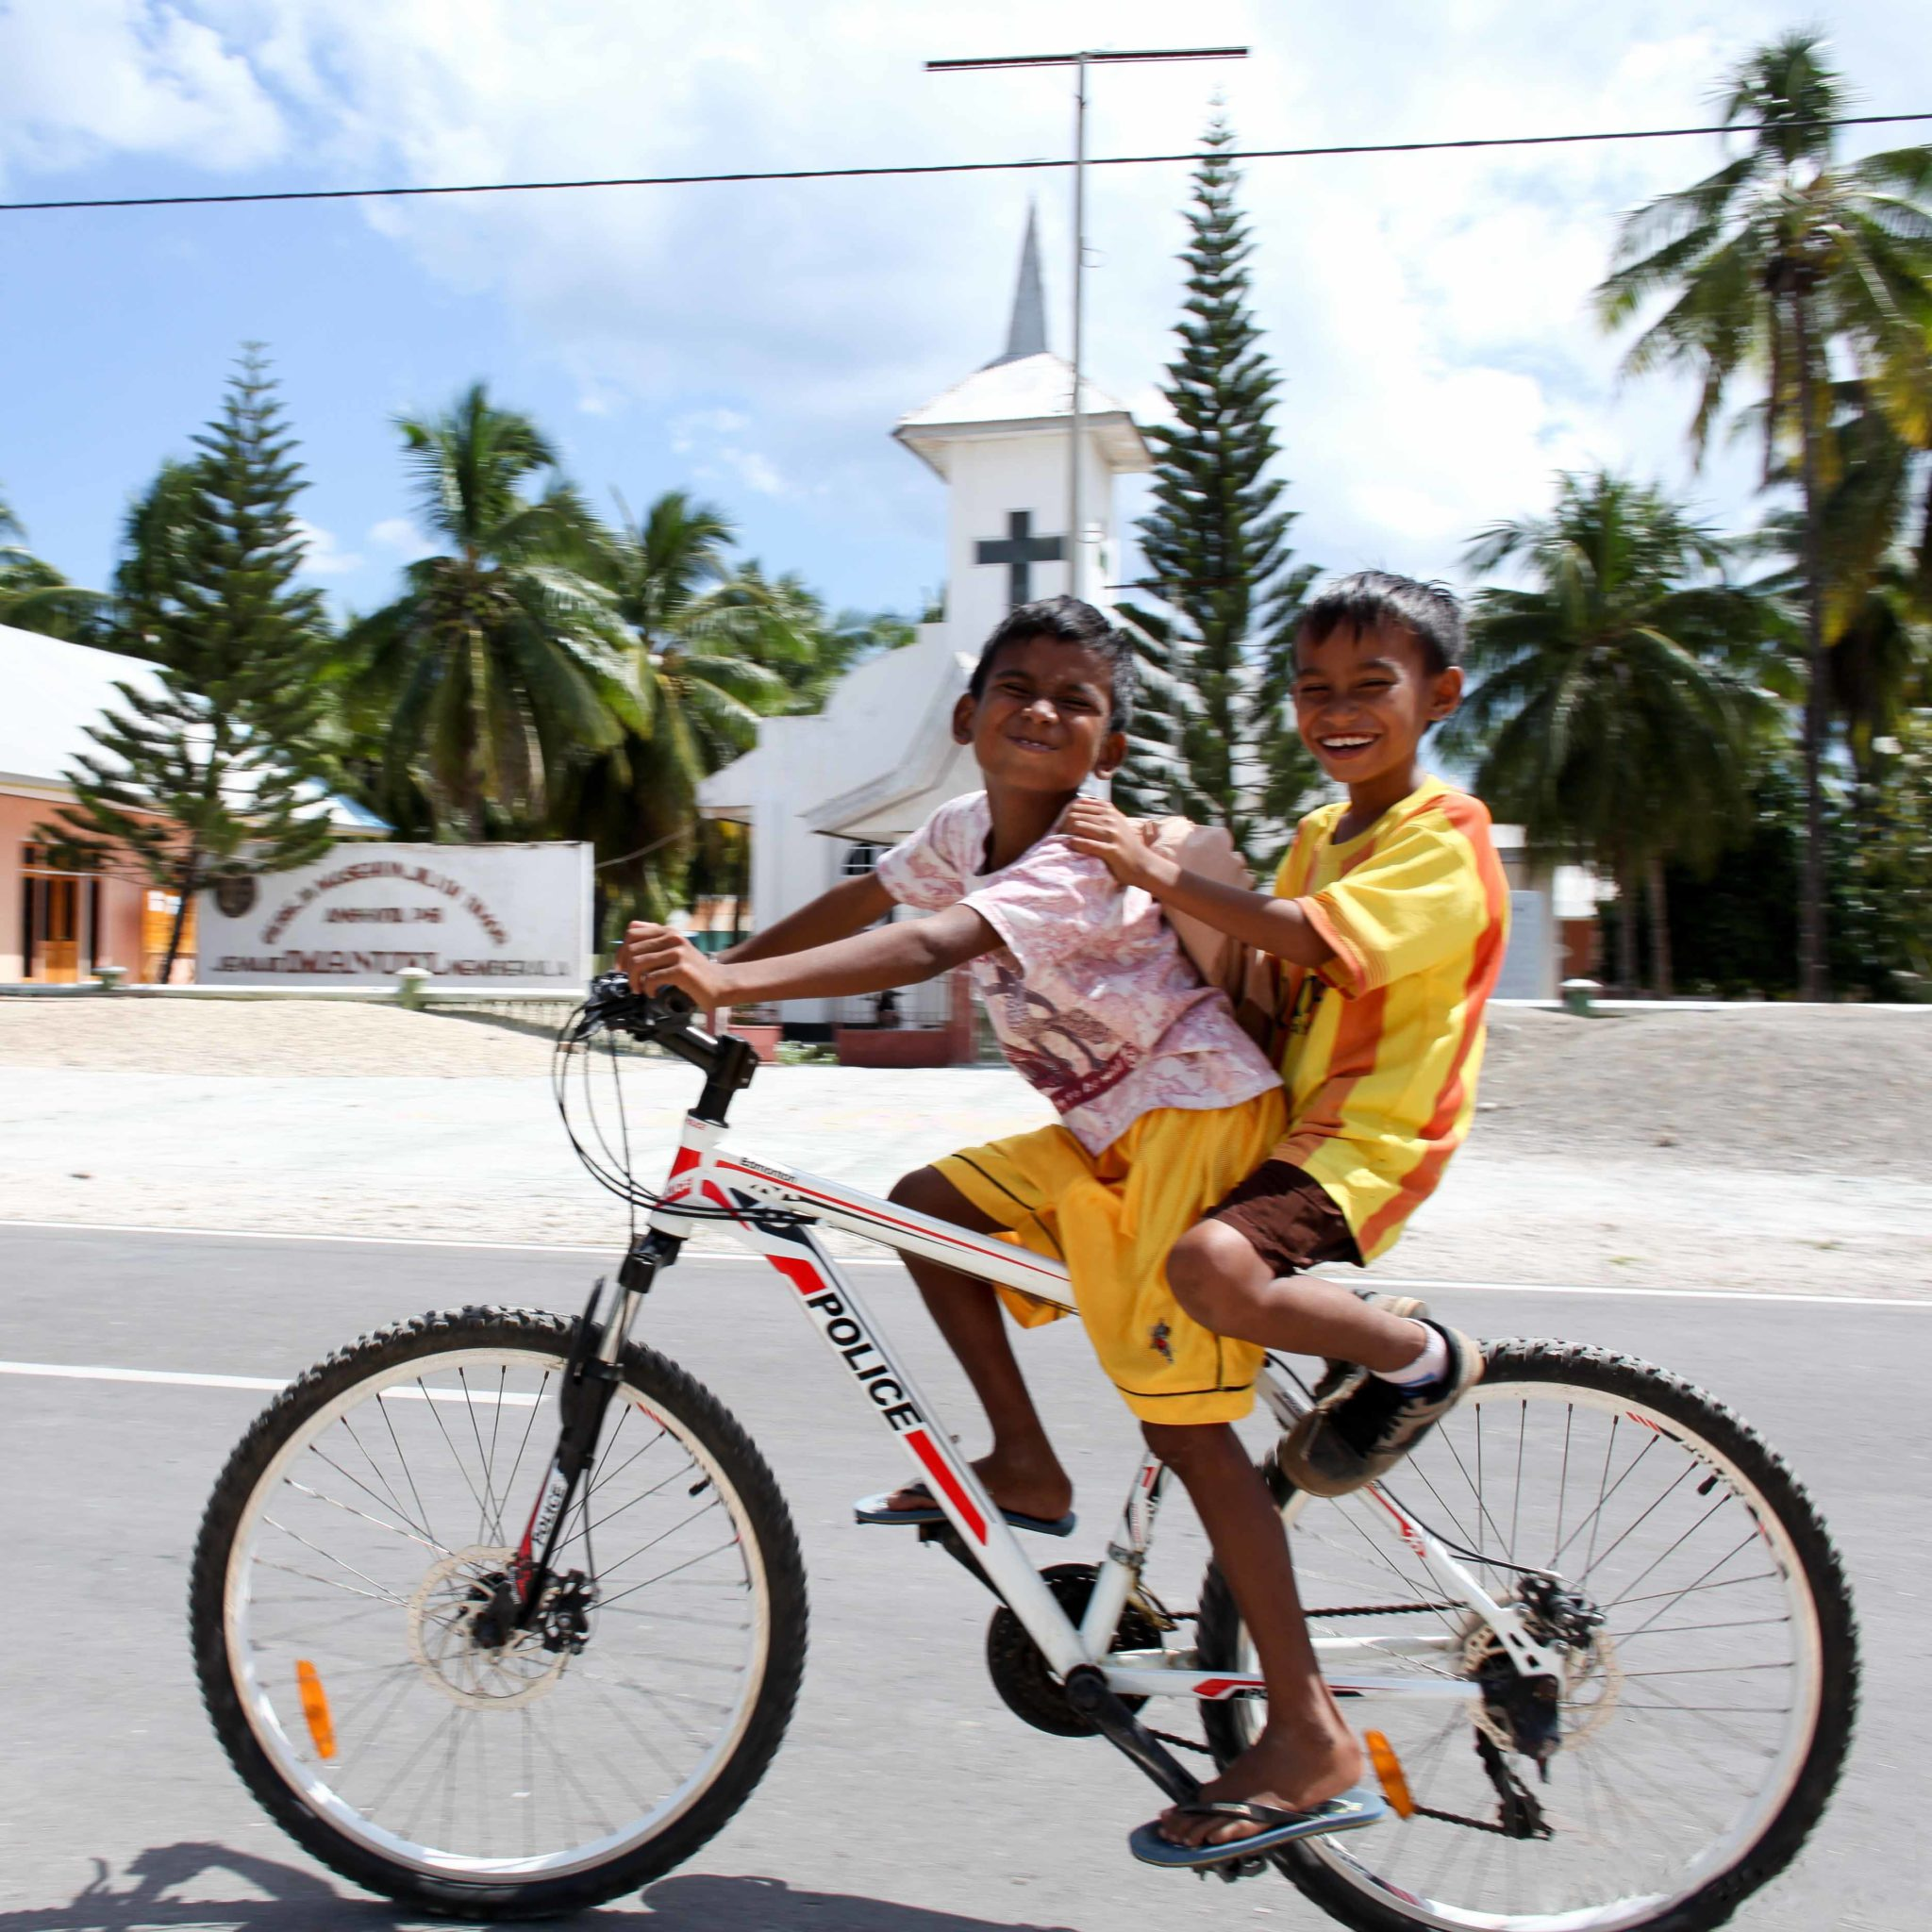 two young boys bycicle church nemberala rote island indonesia anugerah